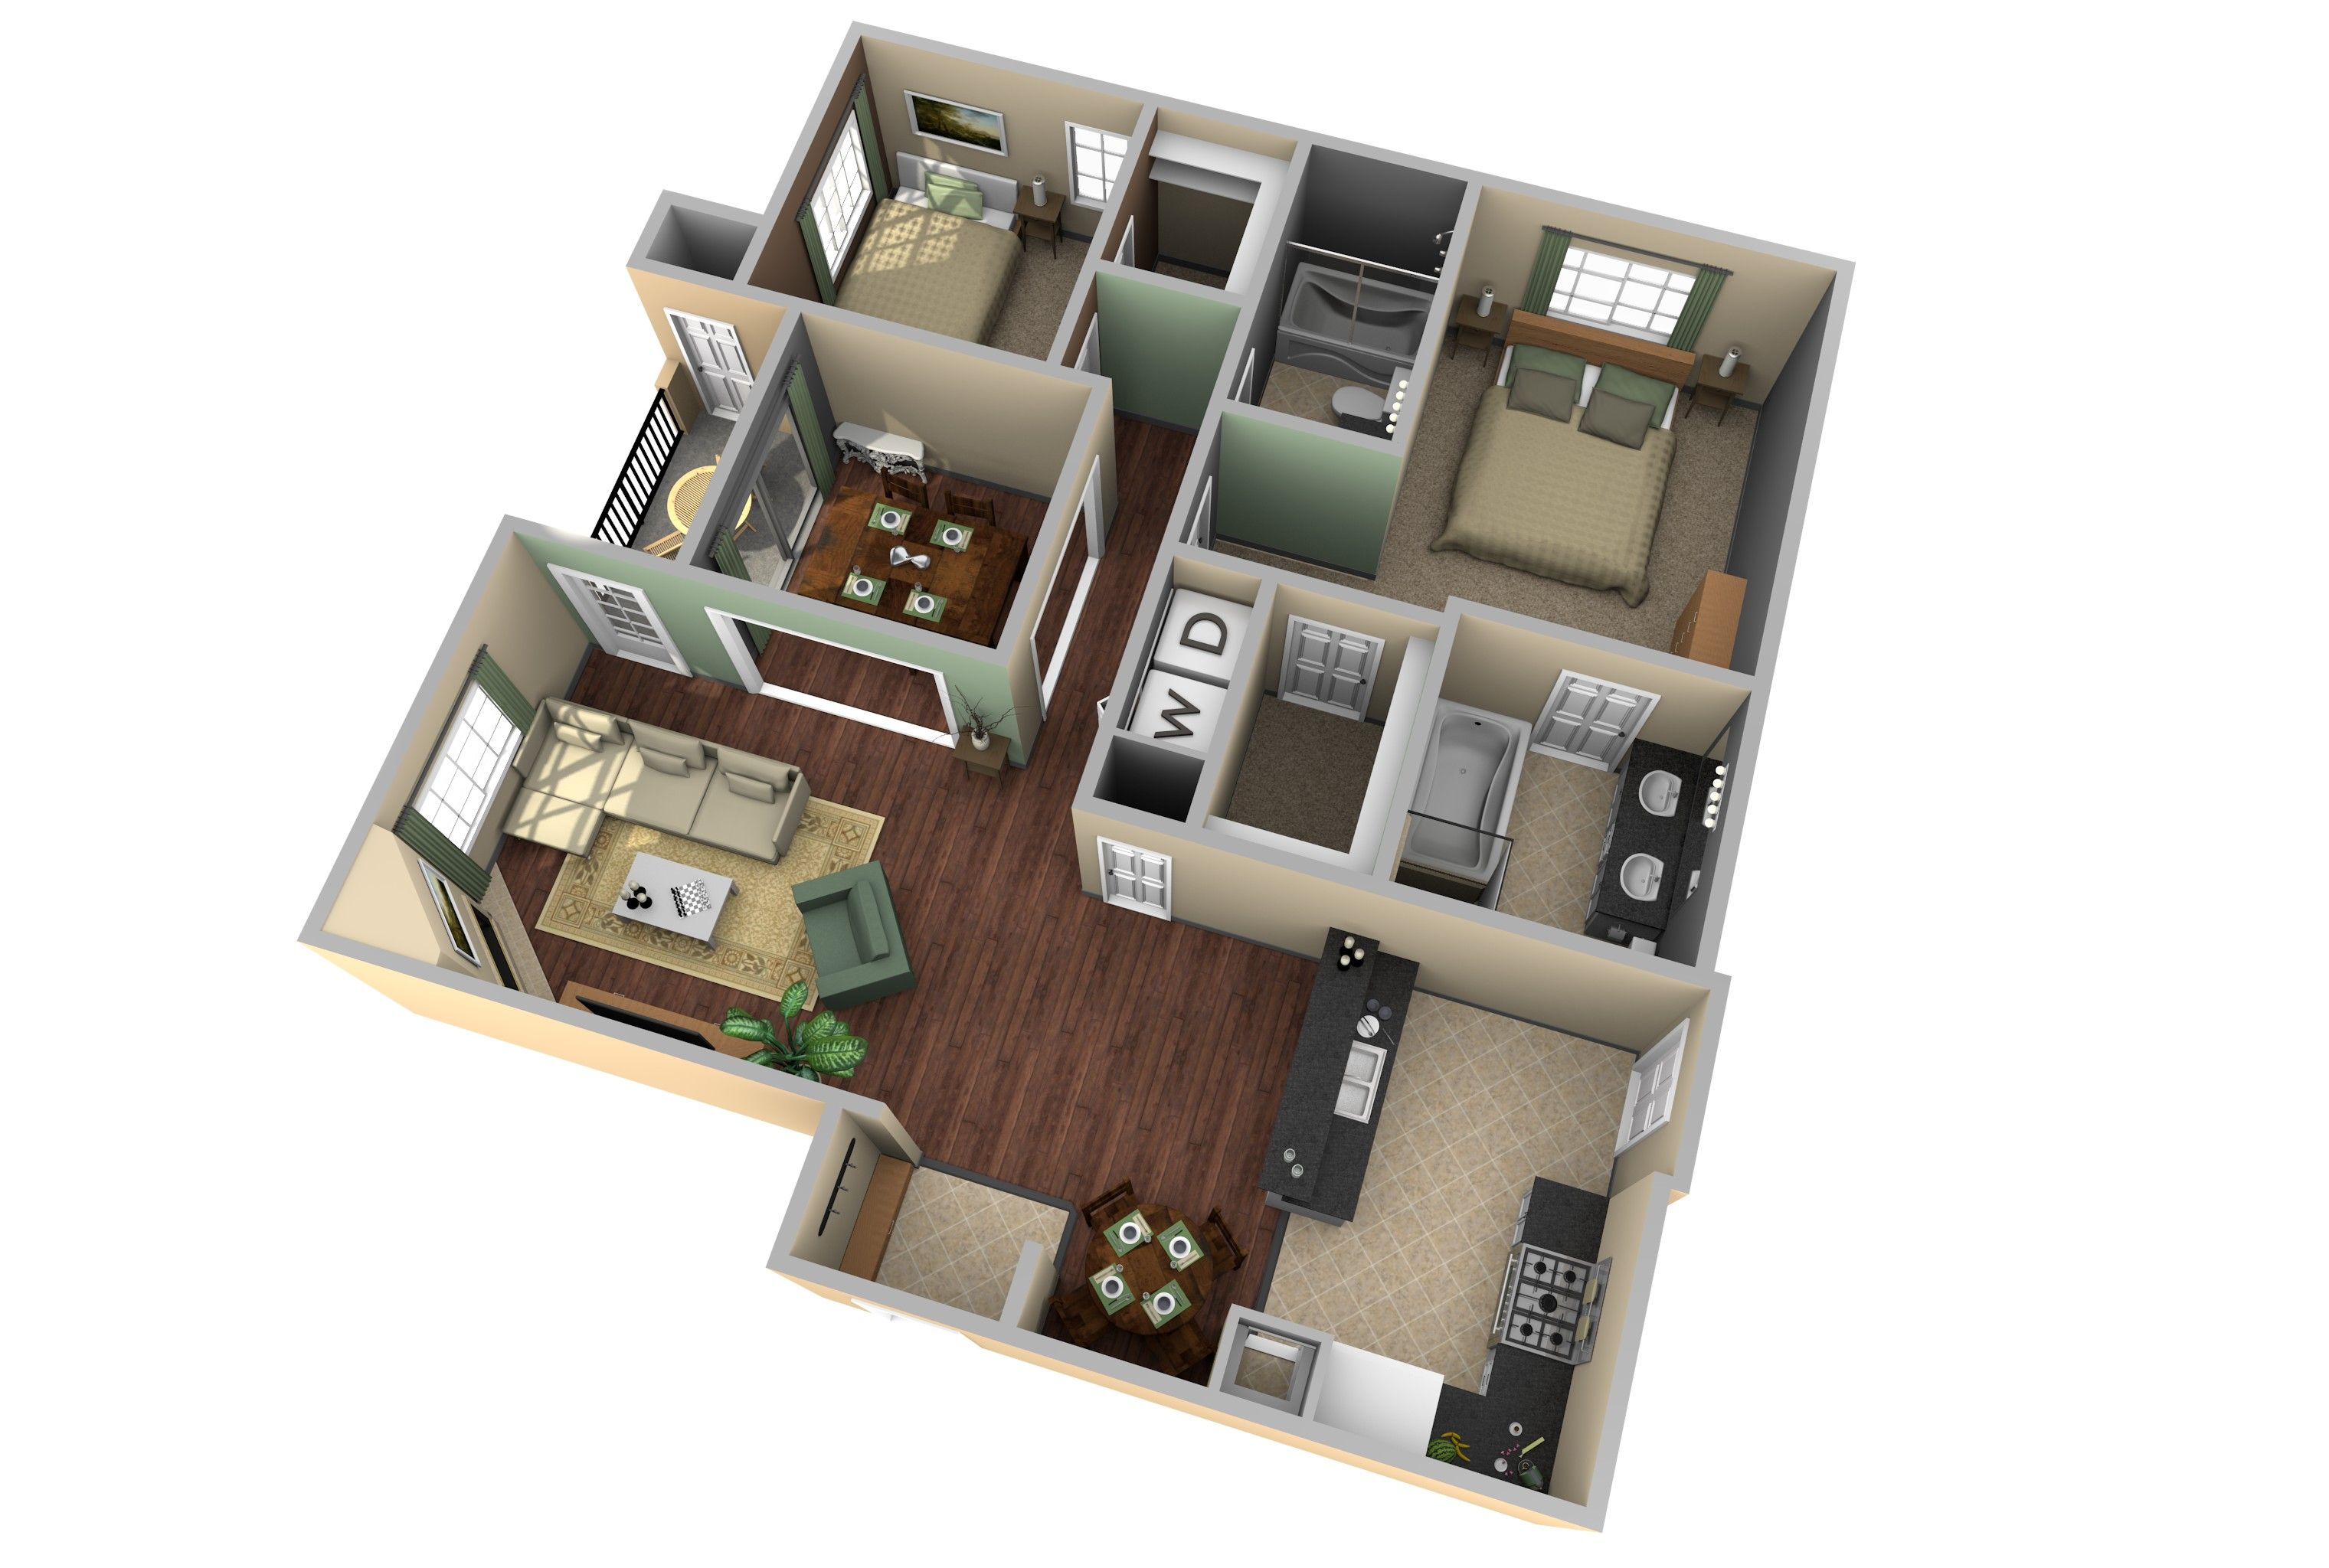 3dapartmentfloorplandesignextraordinary8homedesign